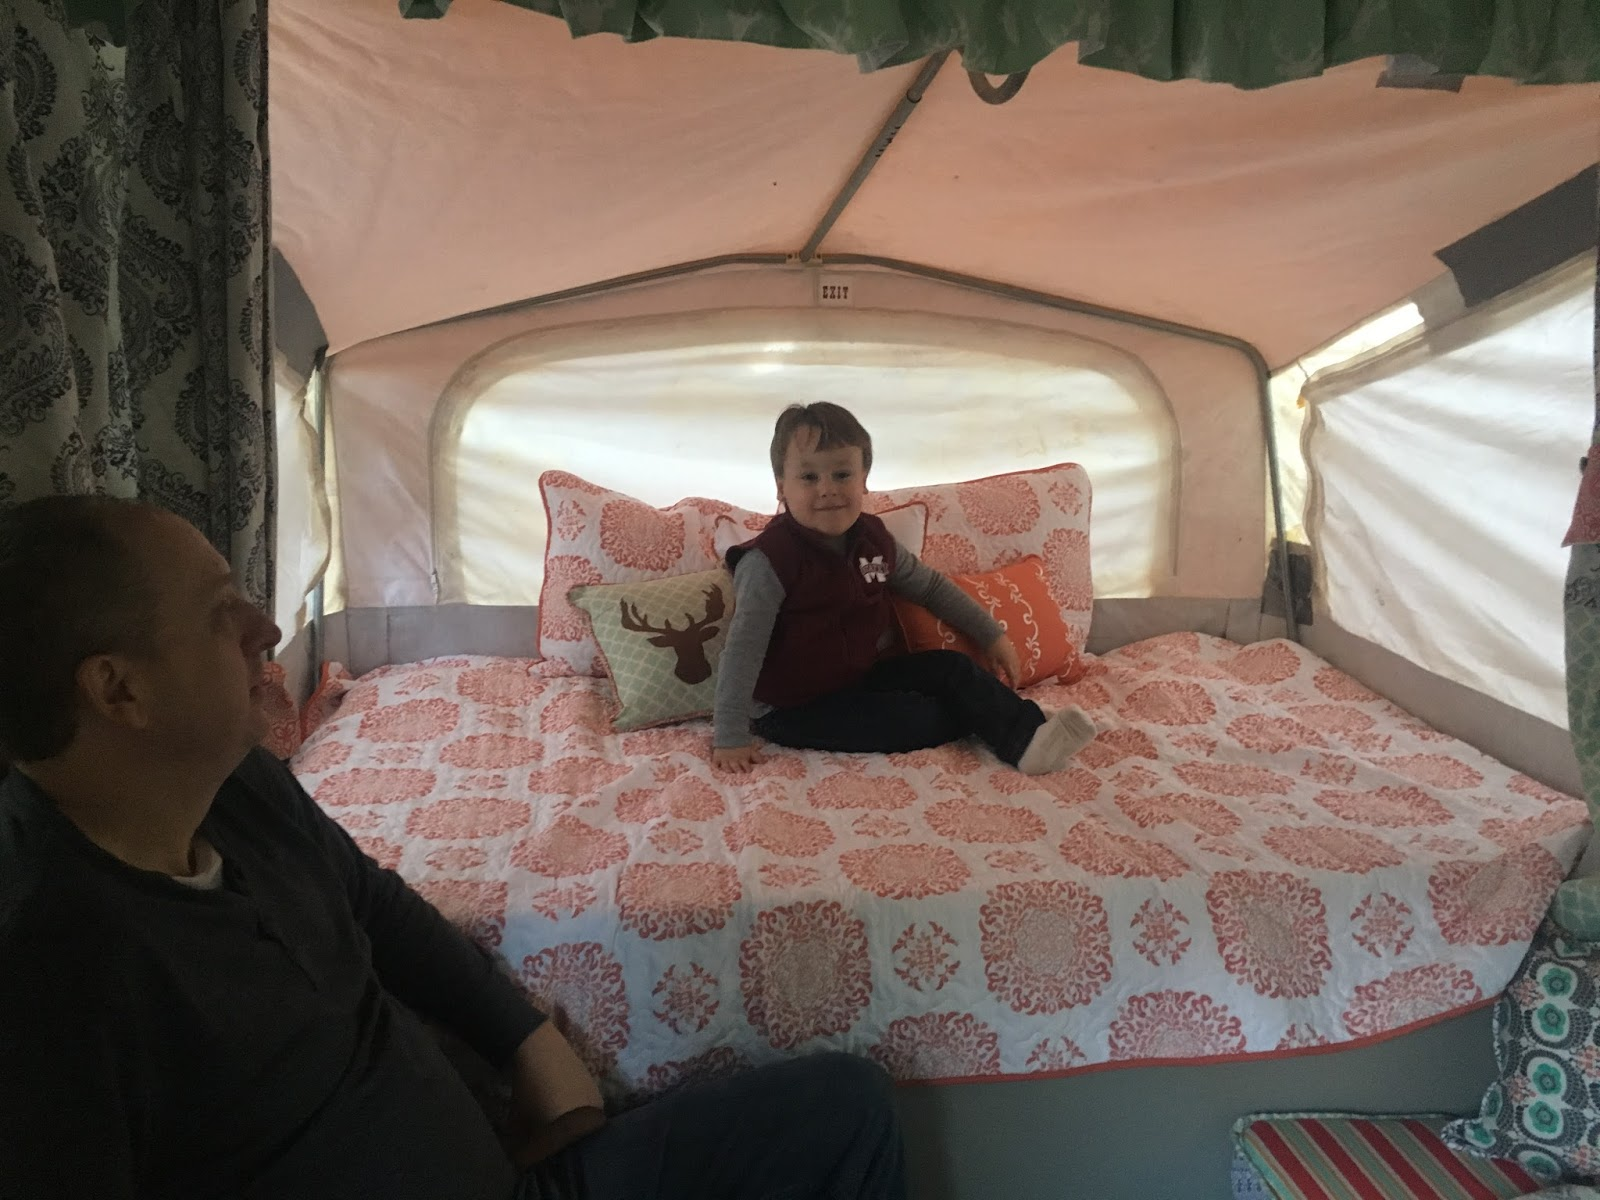 The Southern Glamper: Replacing A Pop Up Camper Mattress on